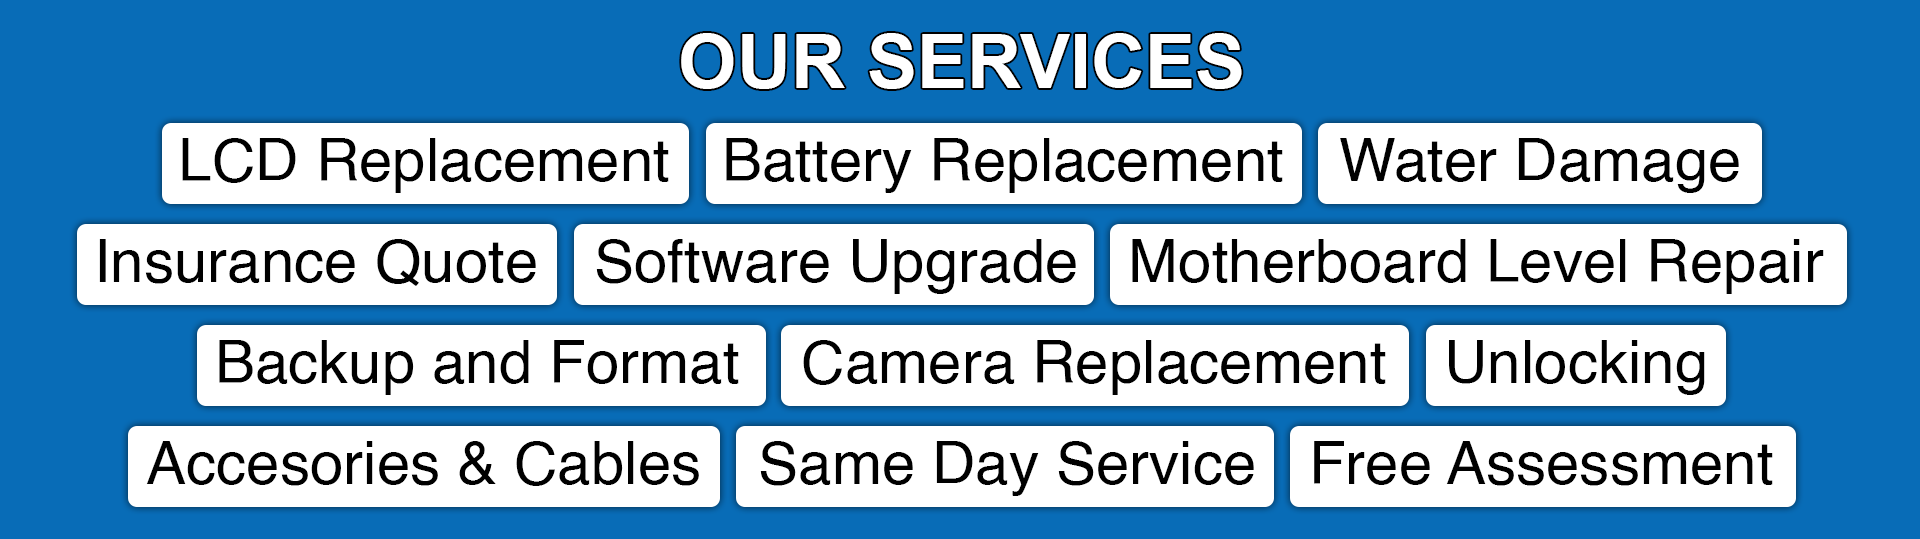 Services offered at GR Phones